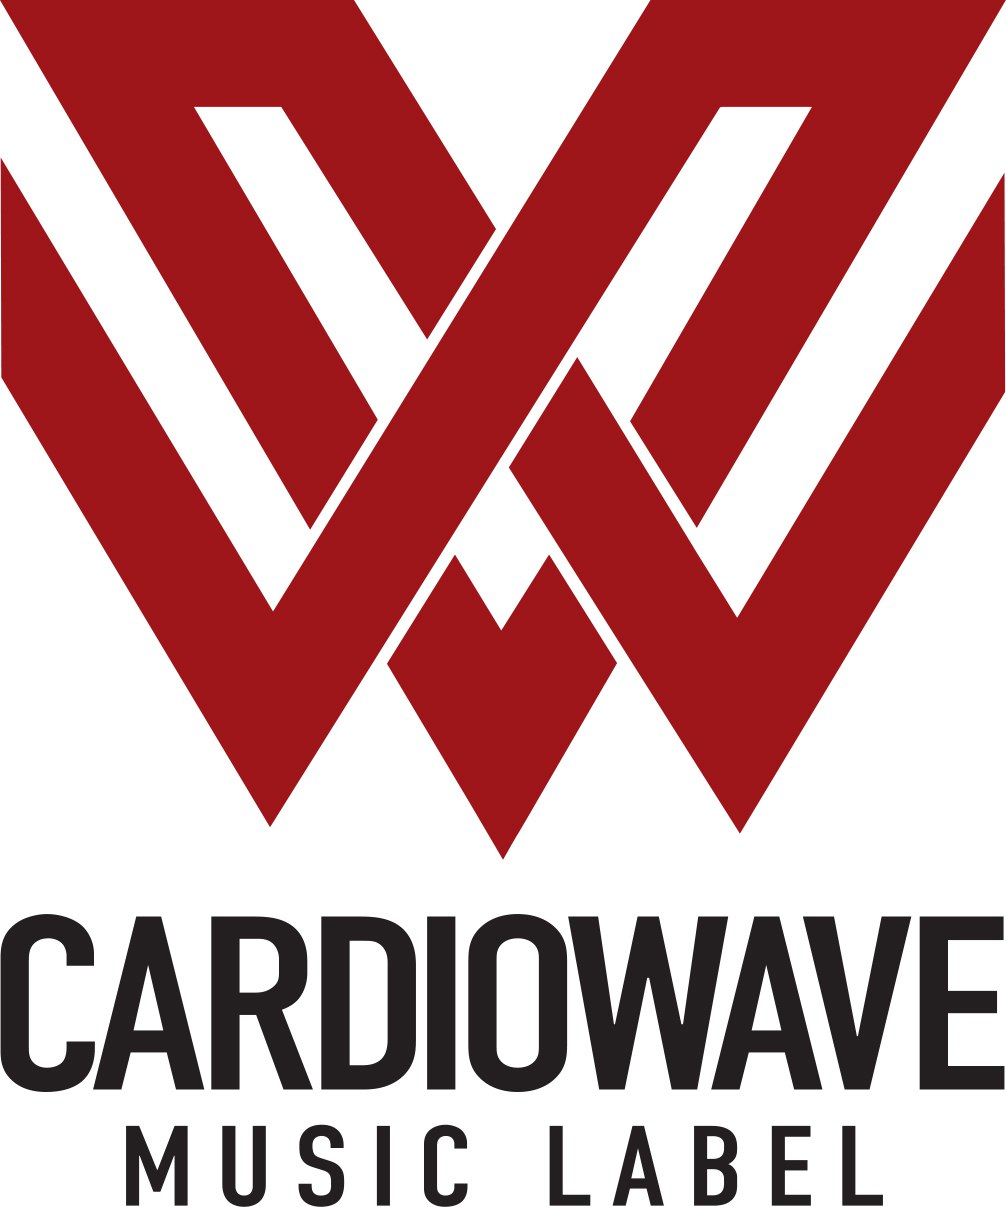 Cardiowave Music Label